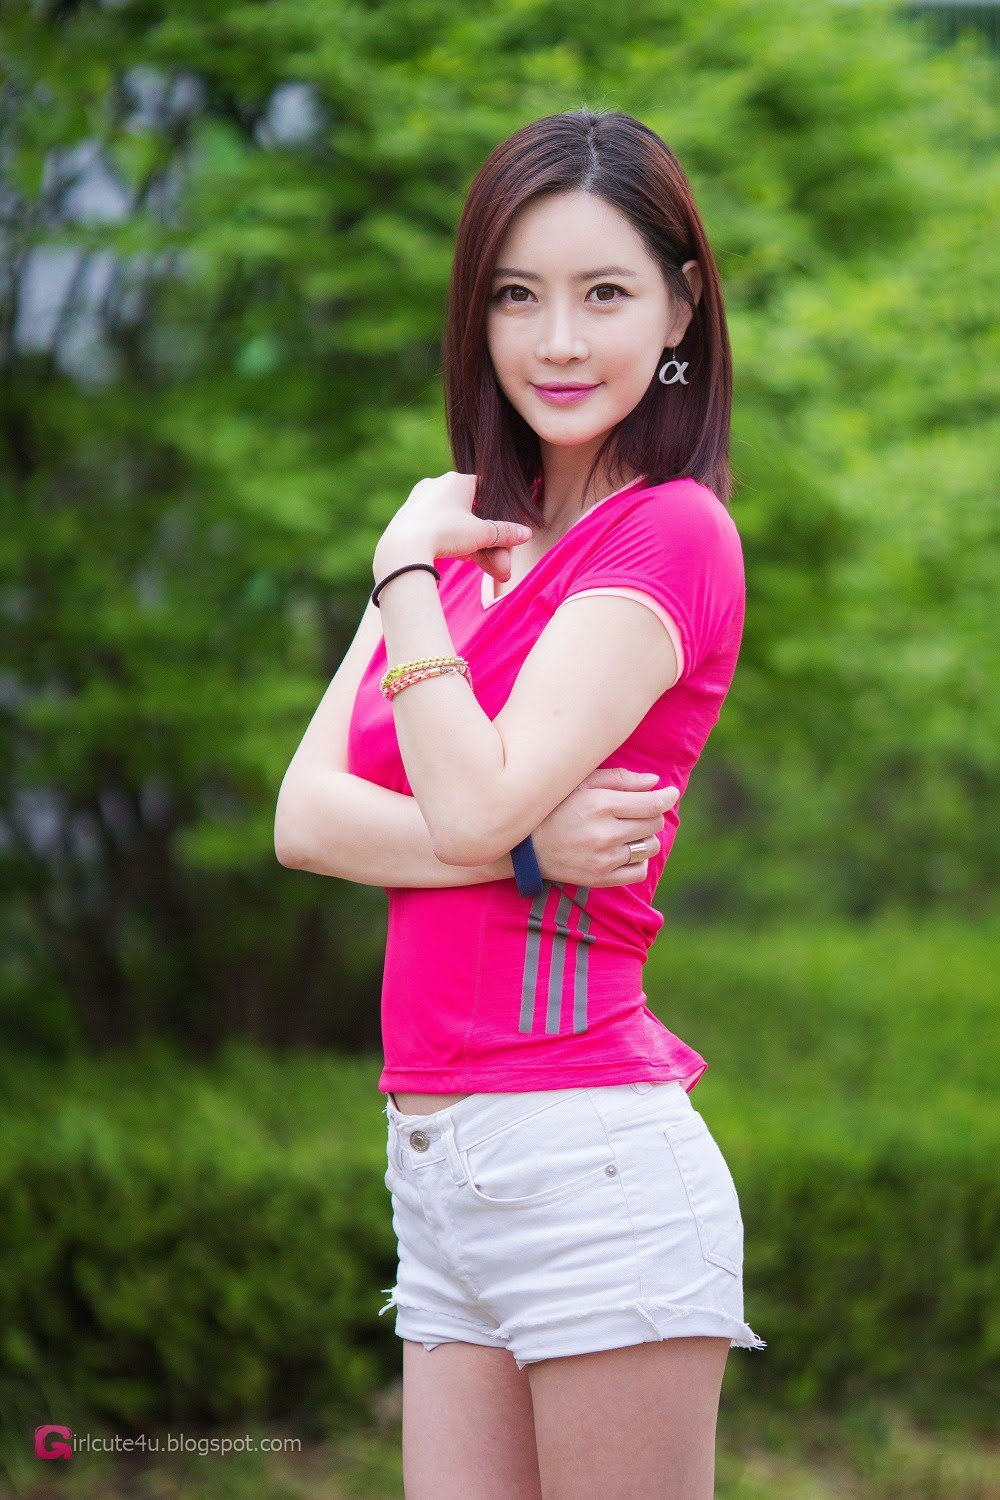 4 Min Soo Ah - P&I 2014 - very cute asian girl-girlcute4u.blogspot.com